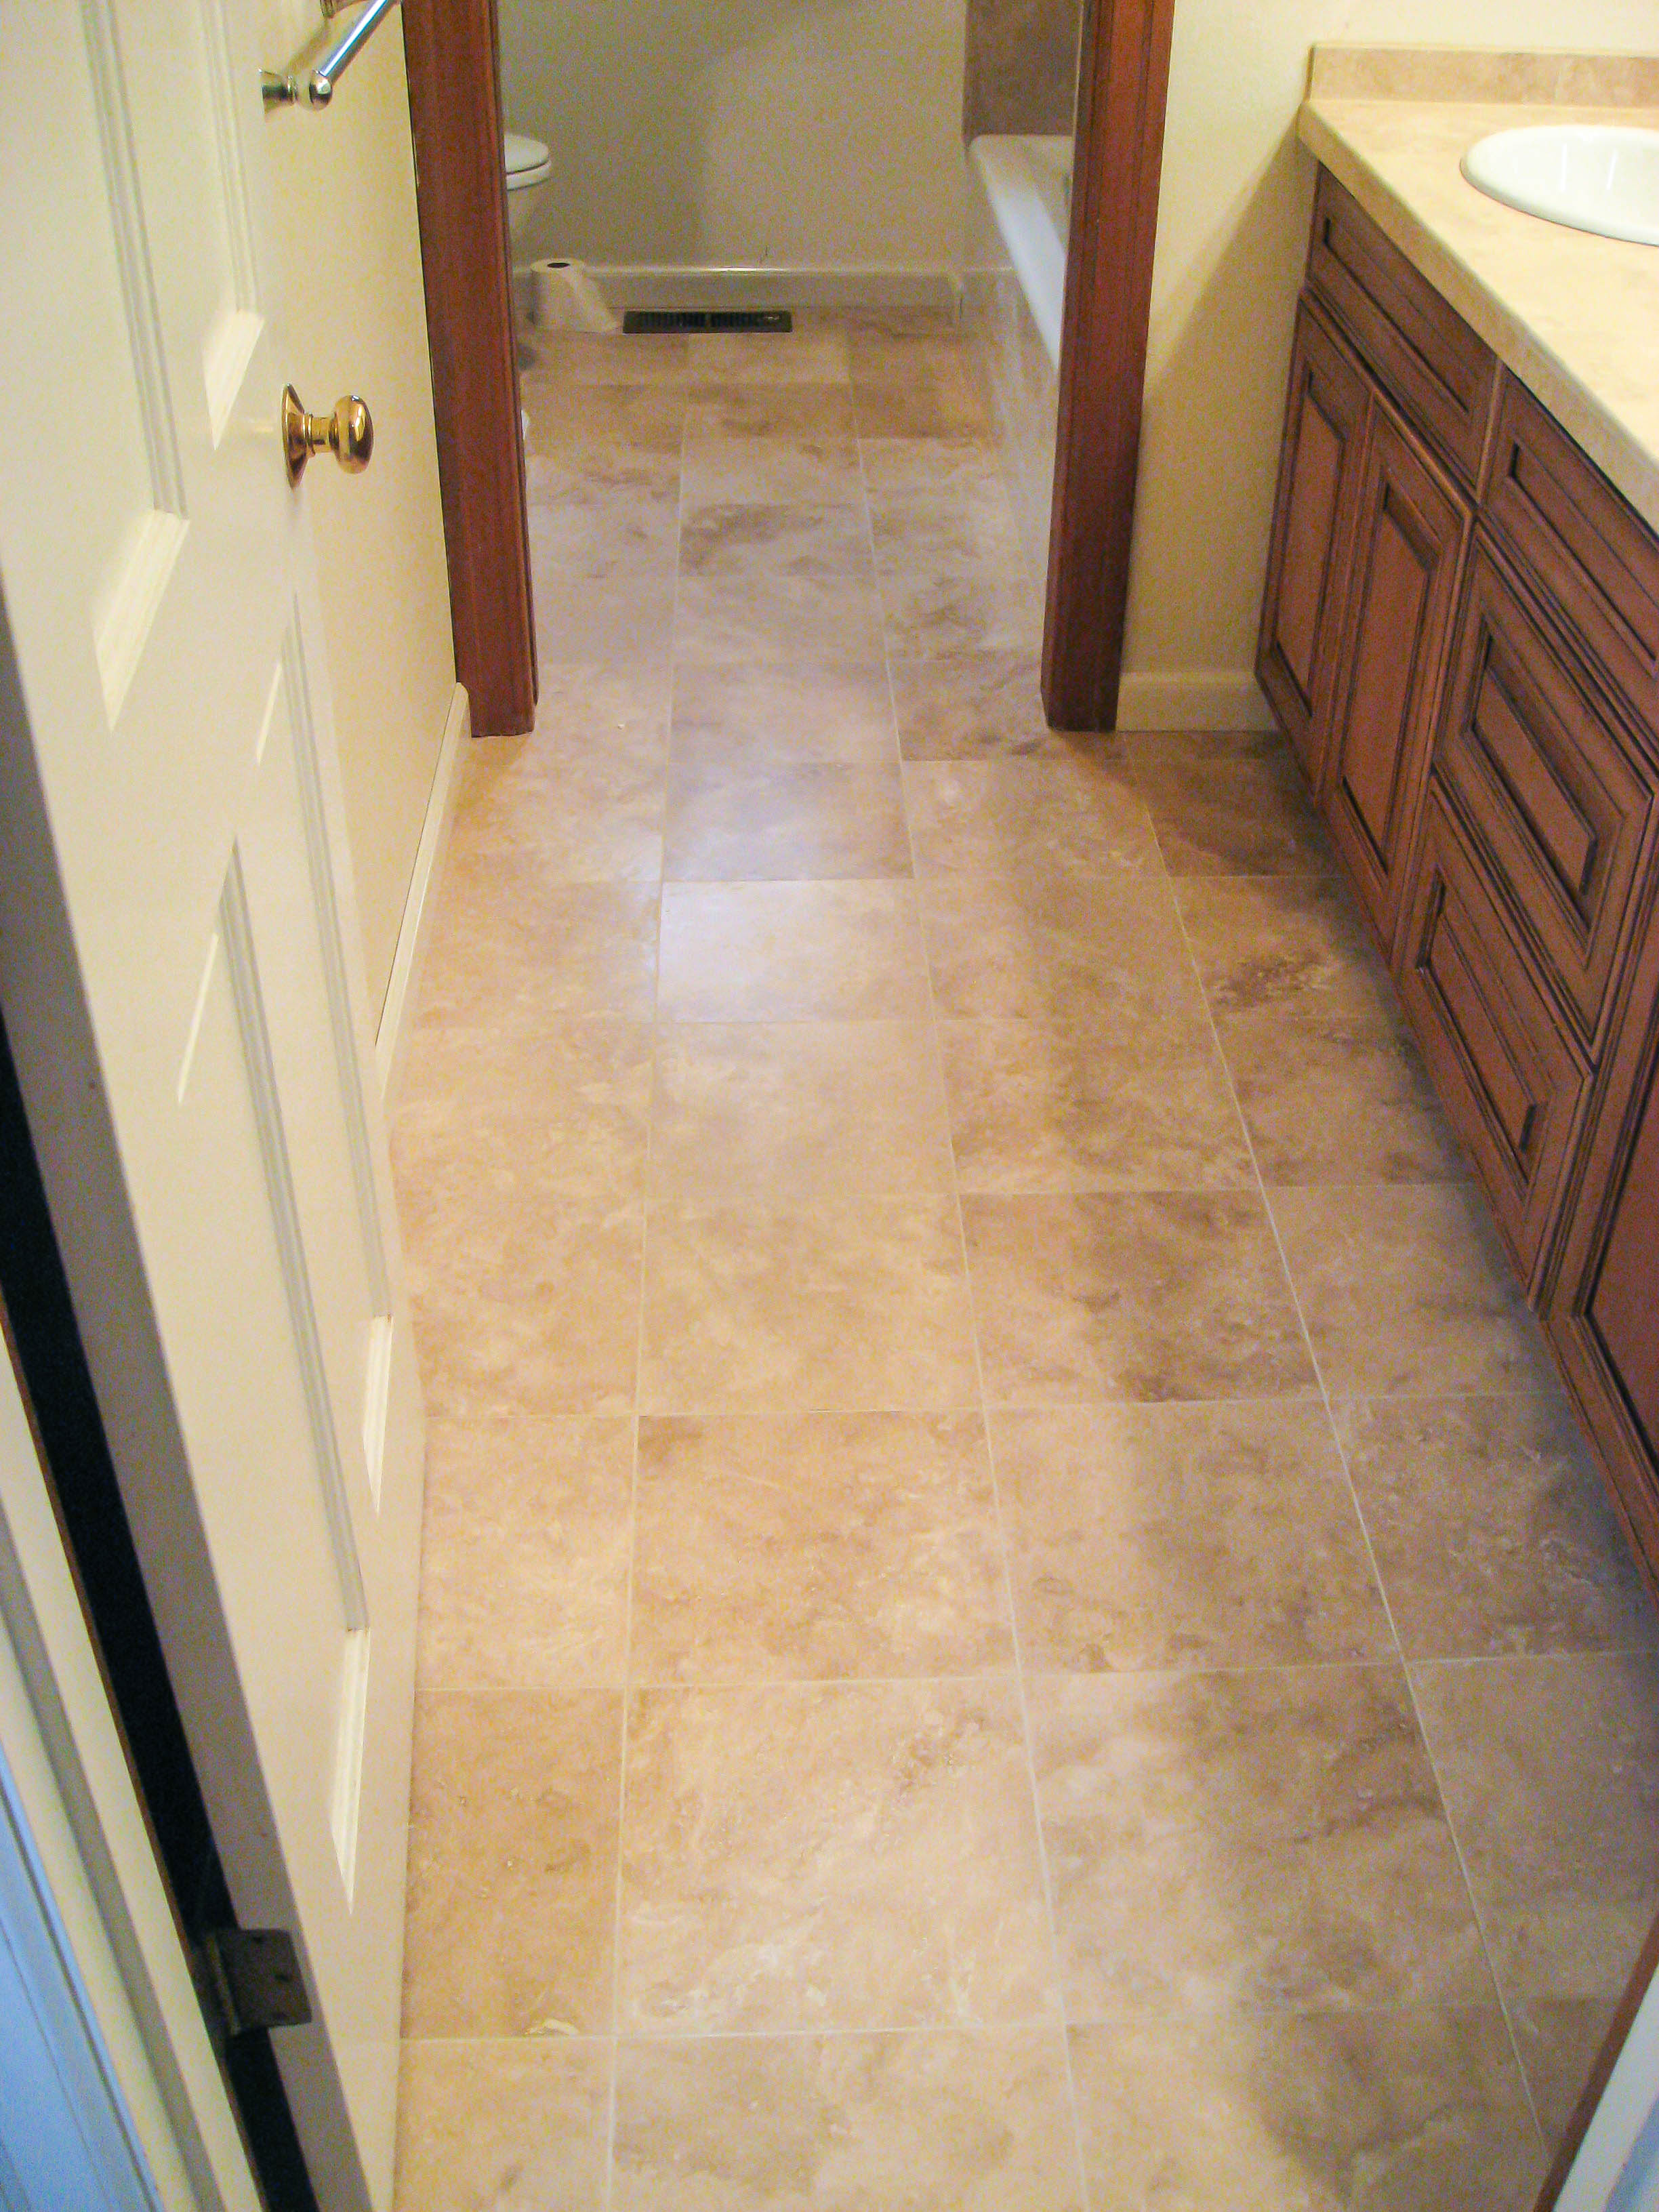 Shower Floor Tiles Which Why And How: Bathroom Floors - Seattle Tile Contractor